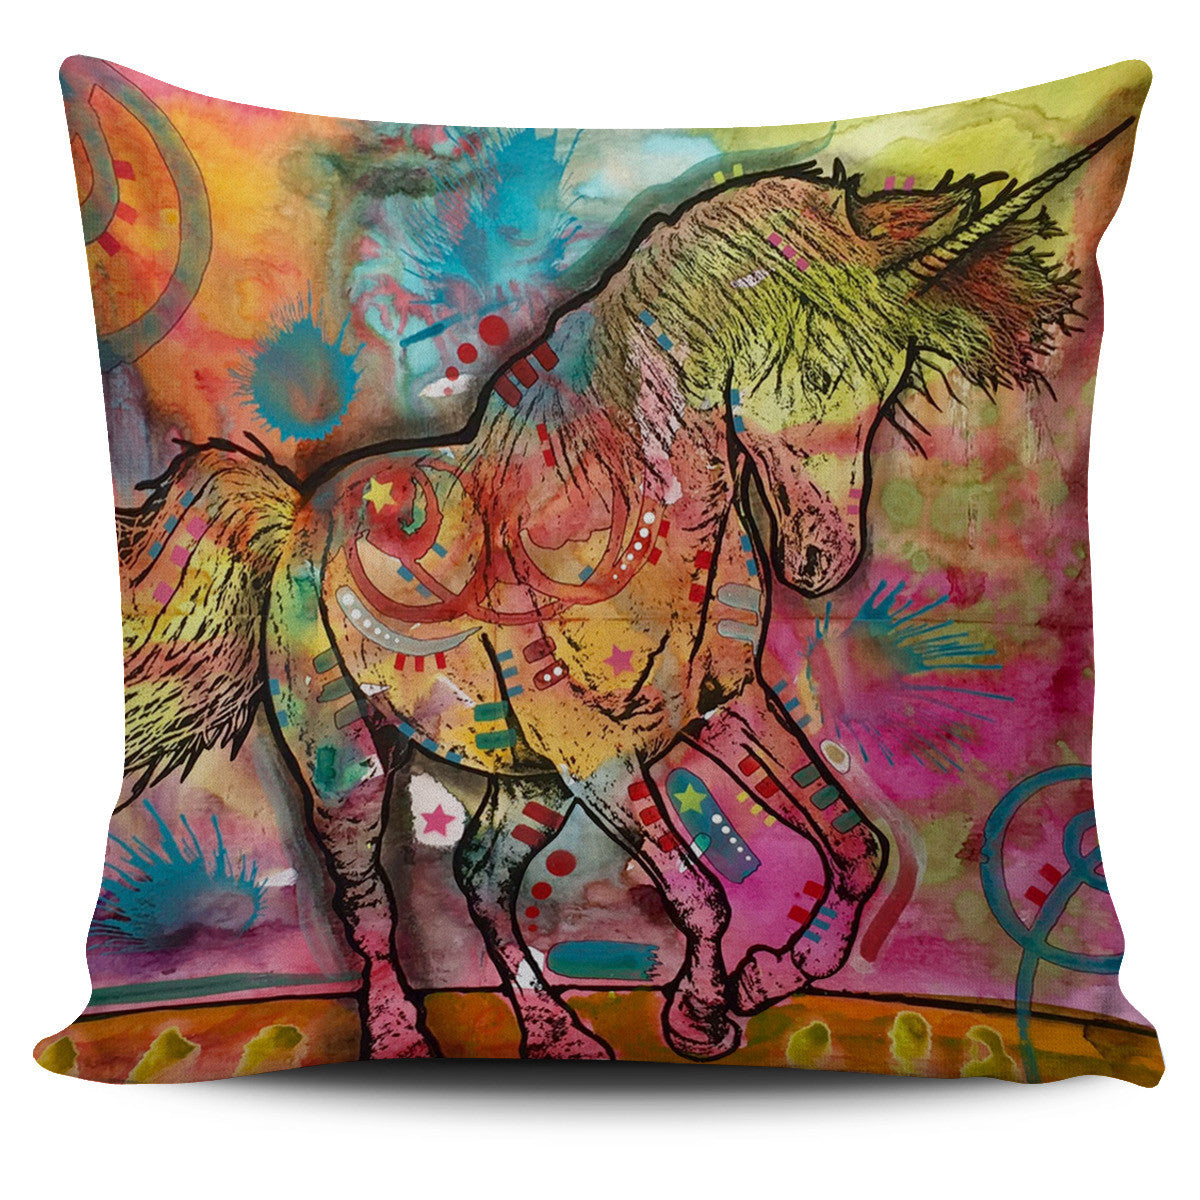 Unicorn Pillow Covers Offer